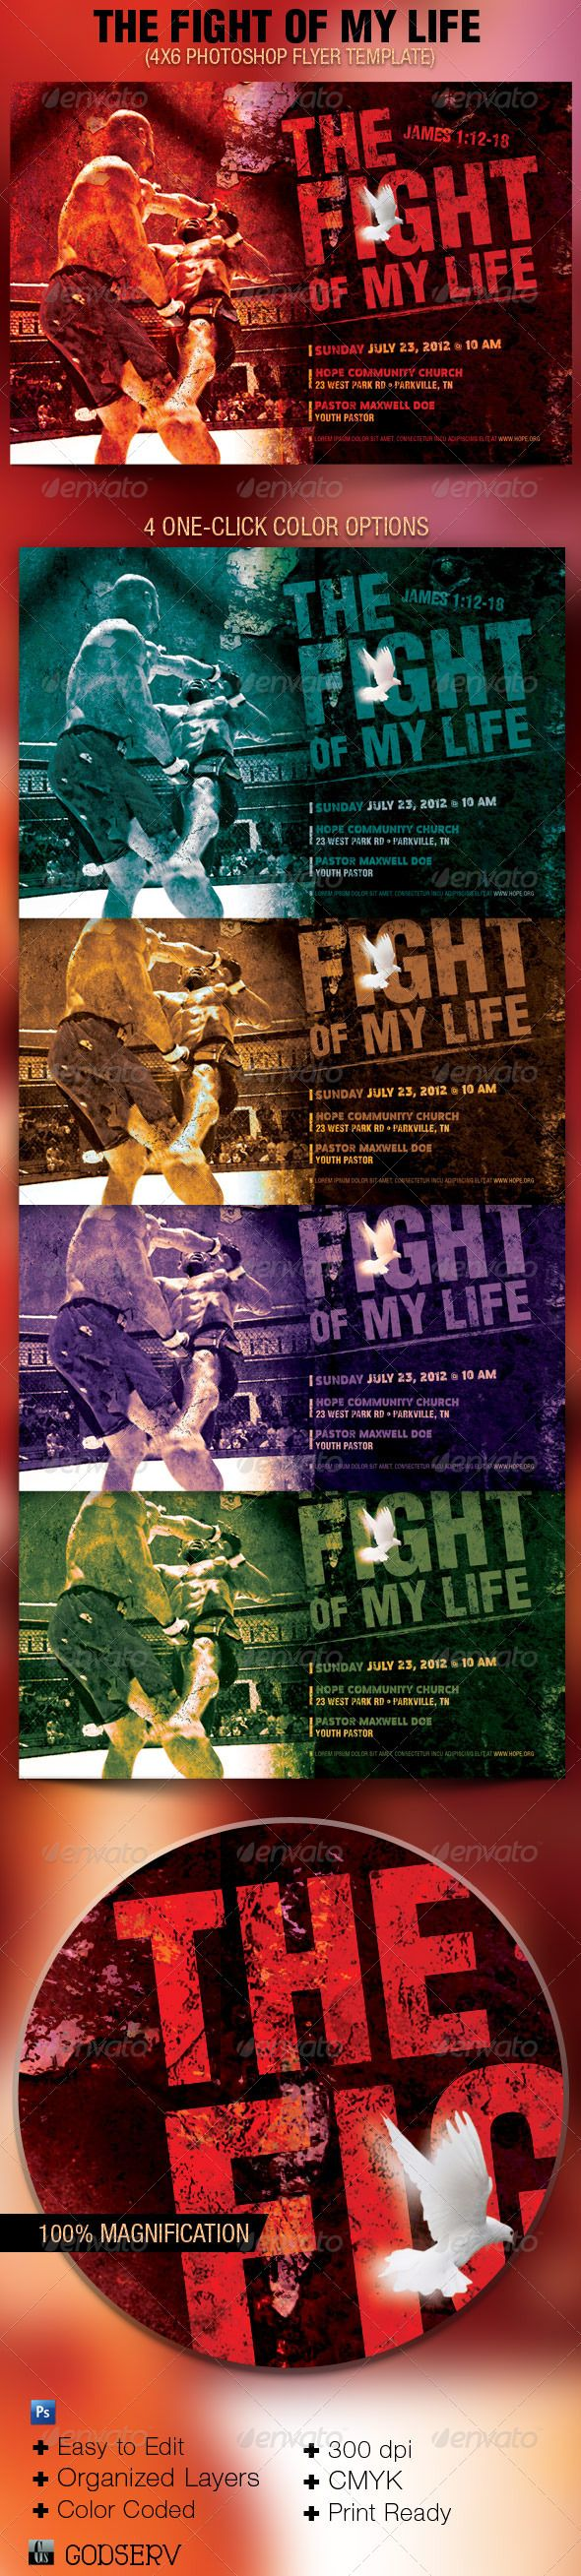 the fight of my life church flyer template